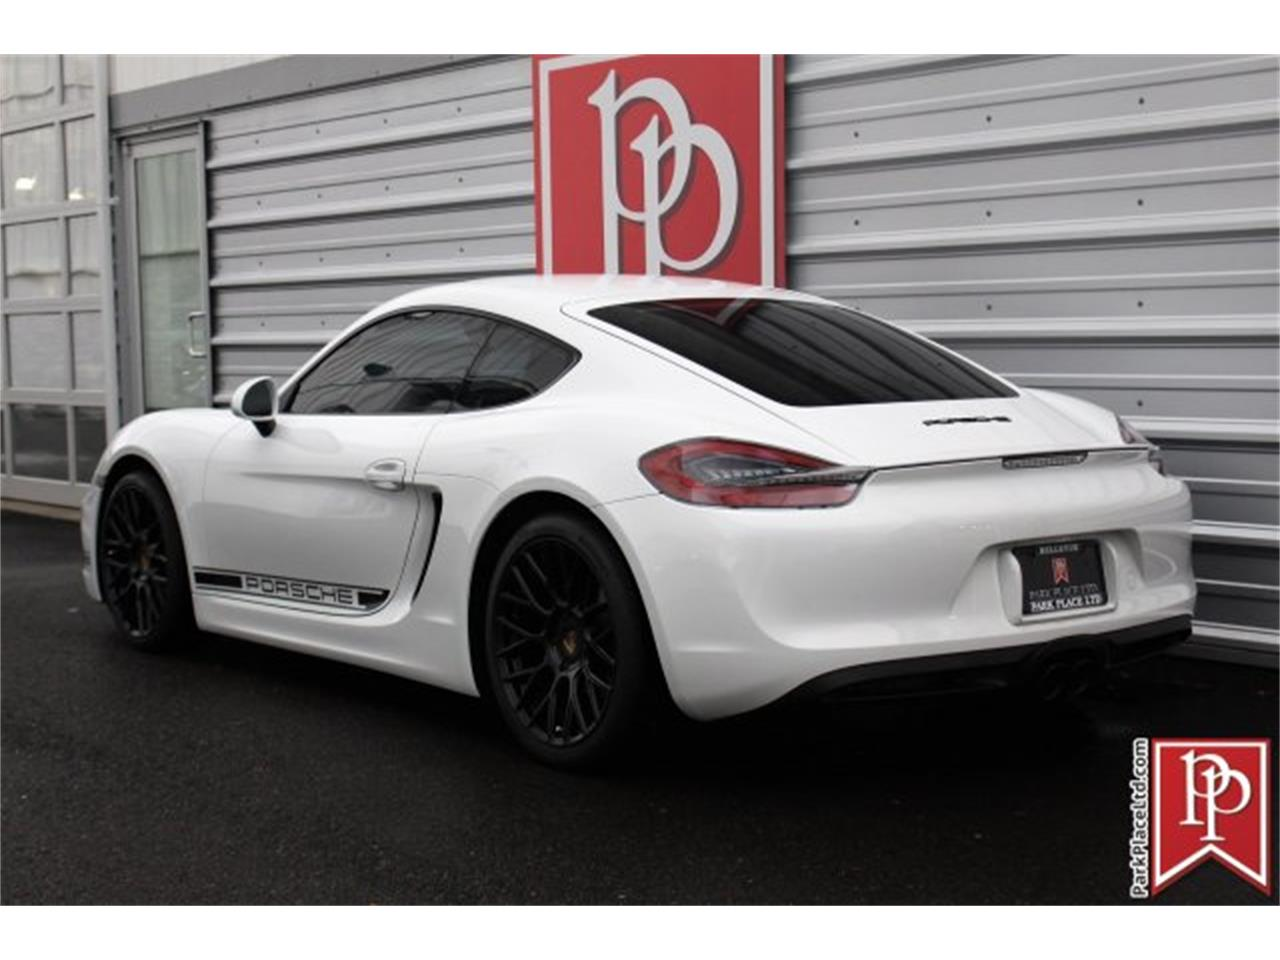 Large Picture of 2014 Porsche Cayman located in Washington - $42,950.00 - Q1WF